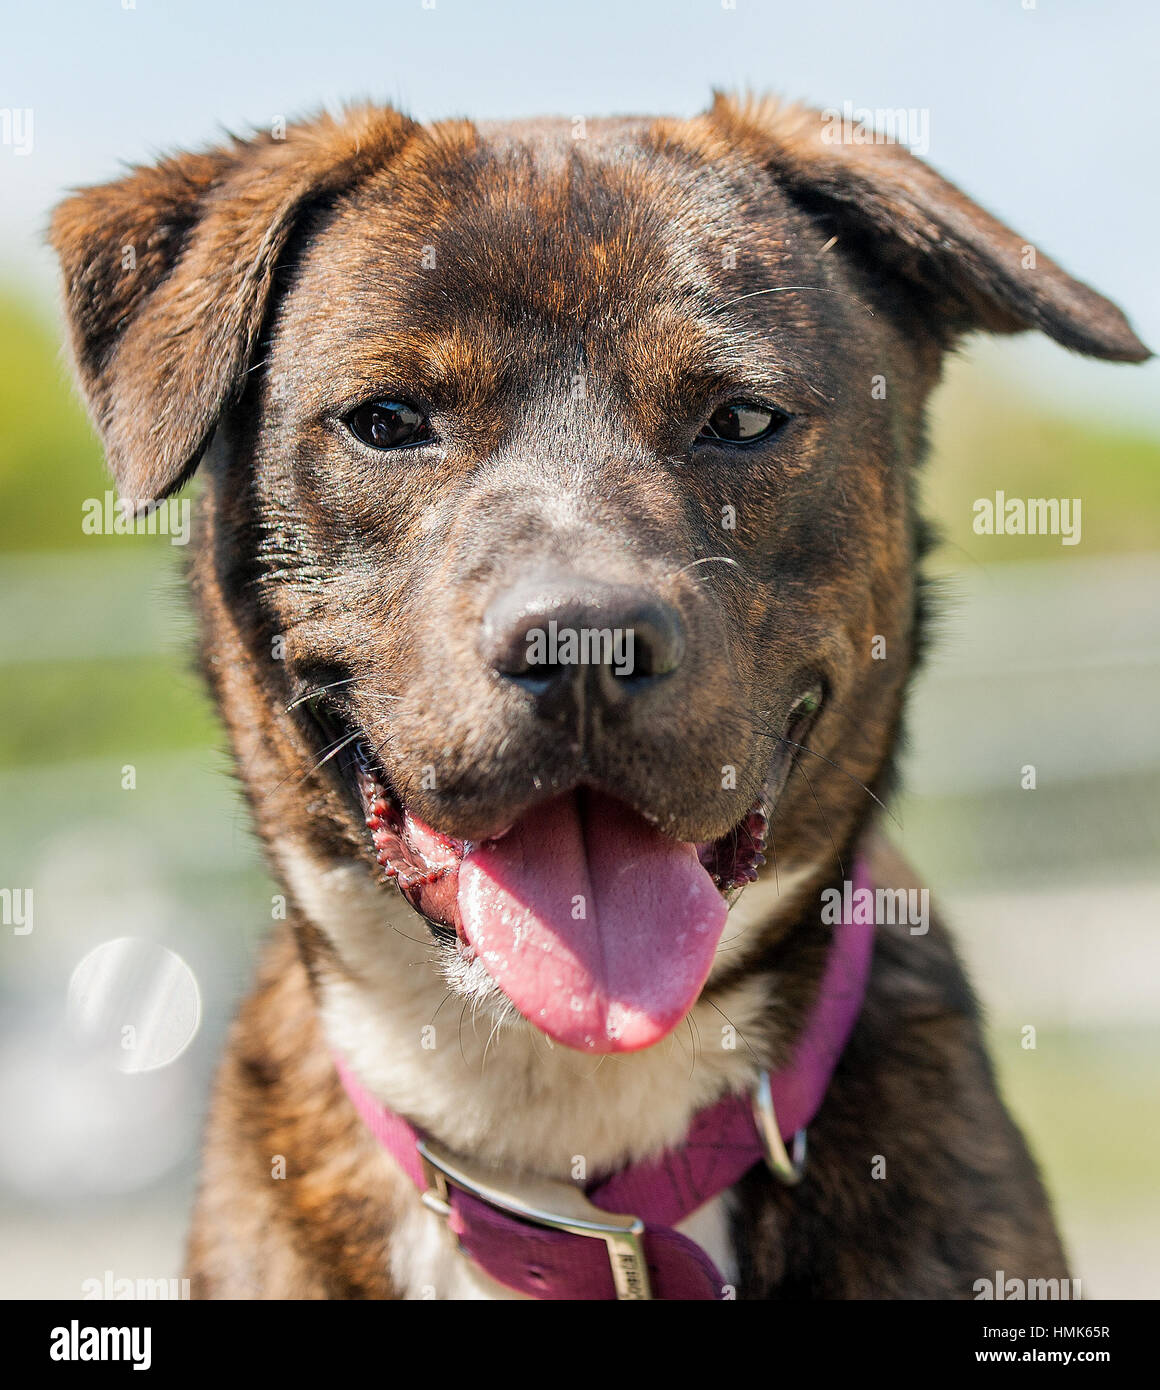 Brindle shelter mixed breed mutt dog headshot close up looking at camera with mouth open - Stock Image